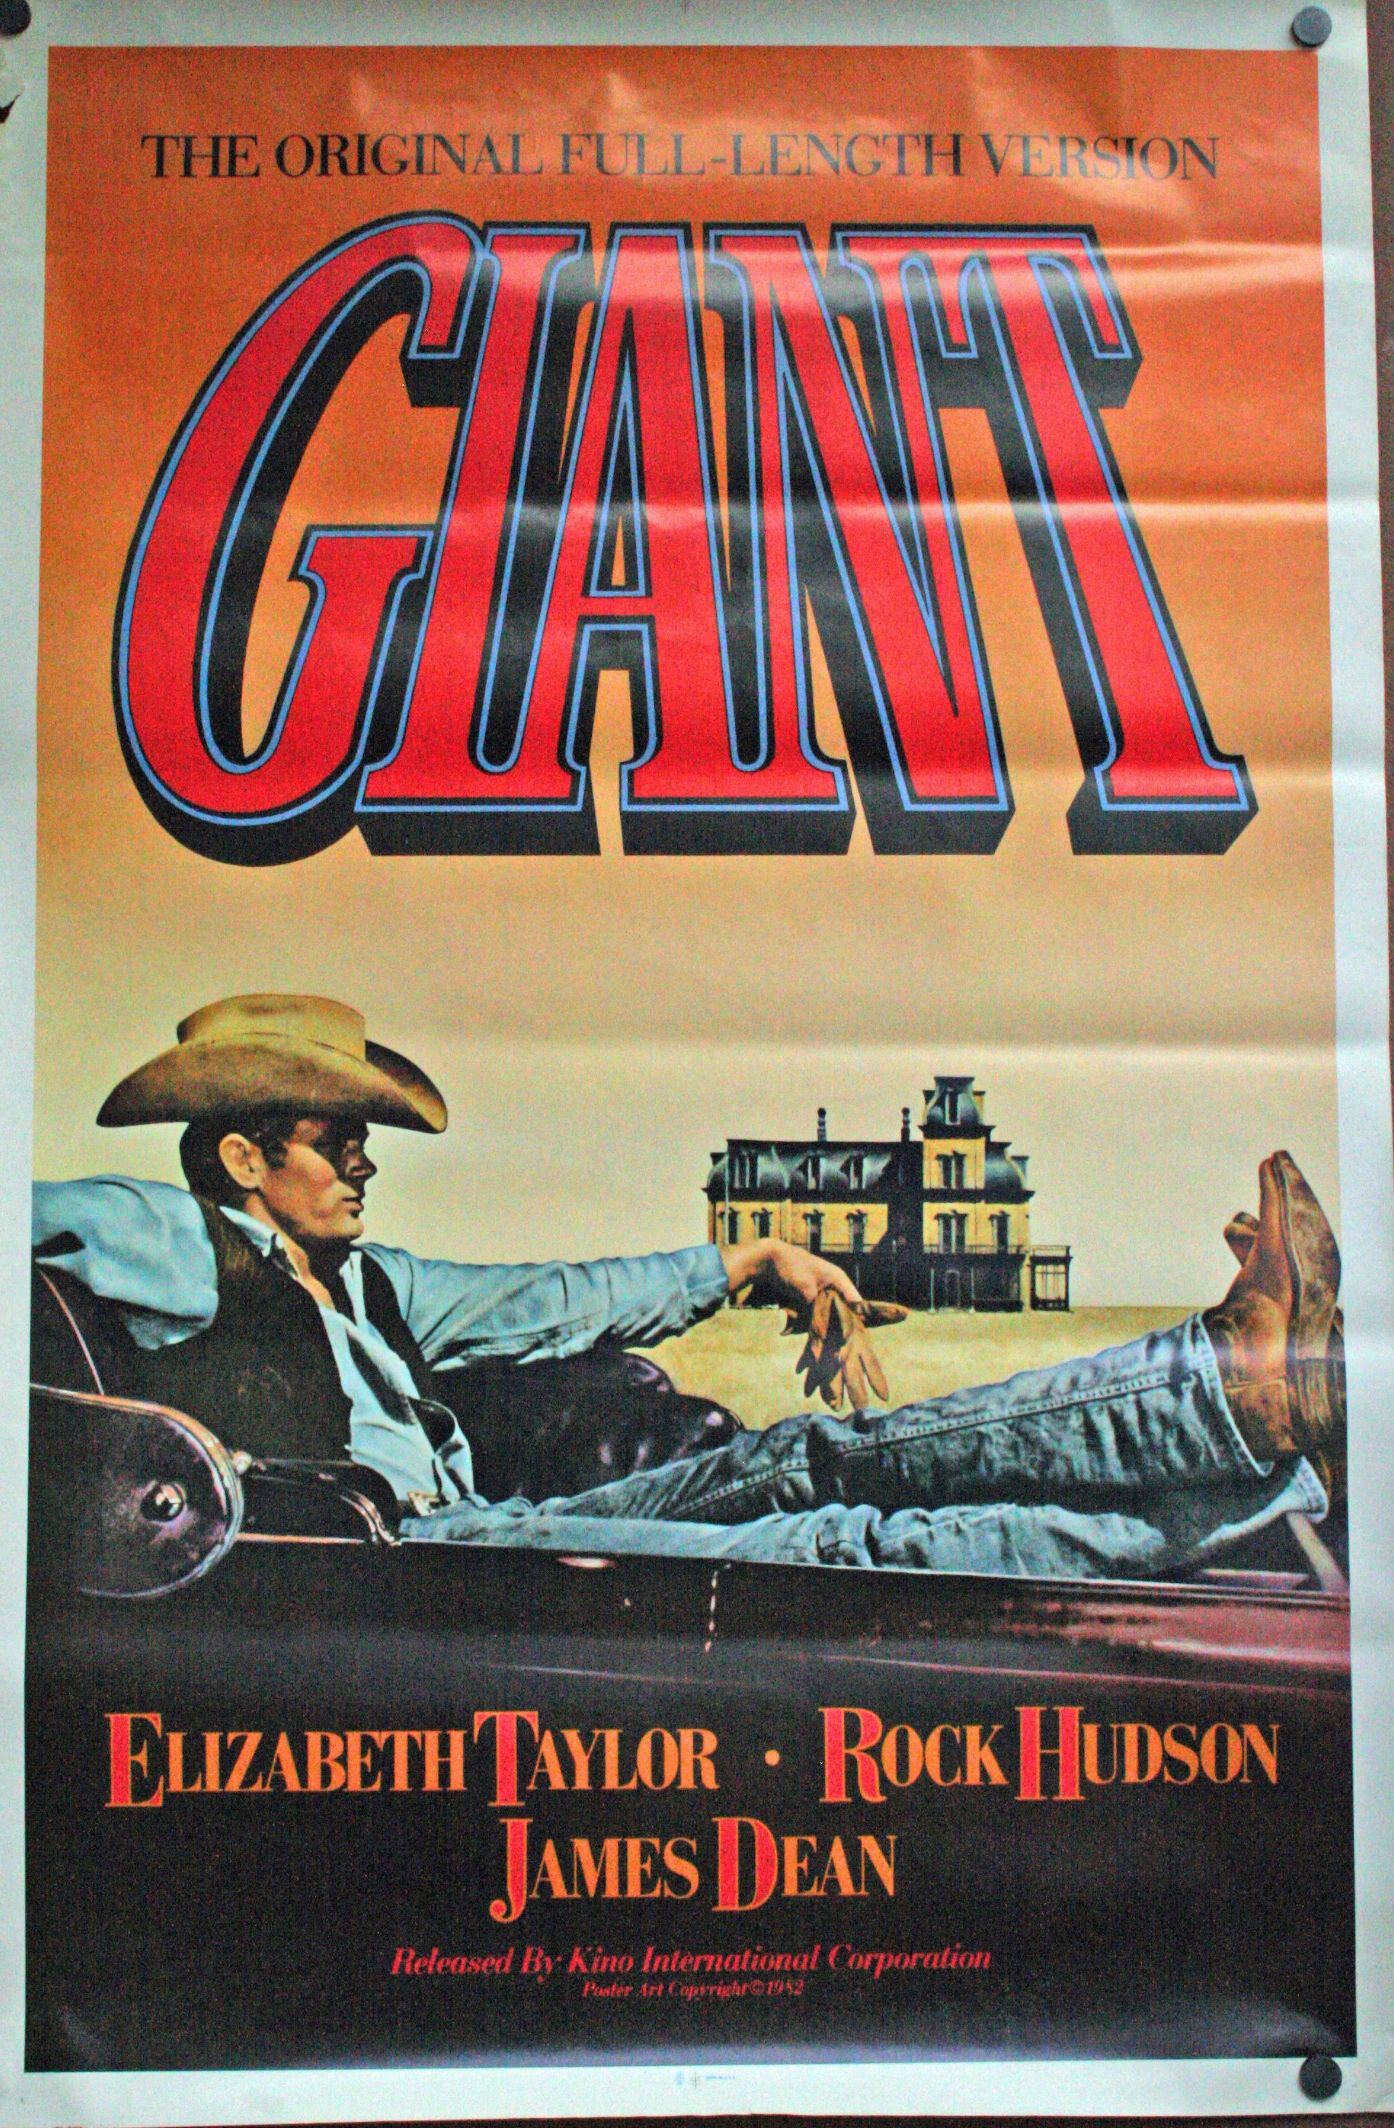 Giant movie posters on sale